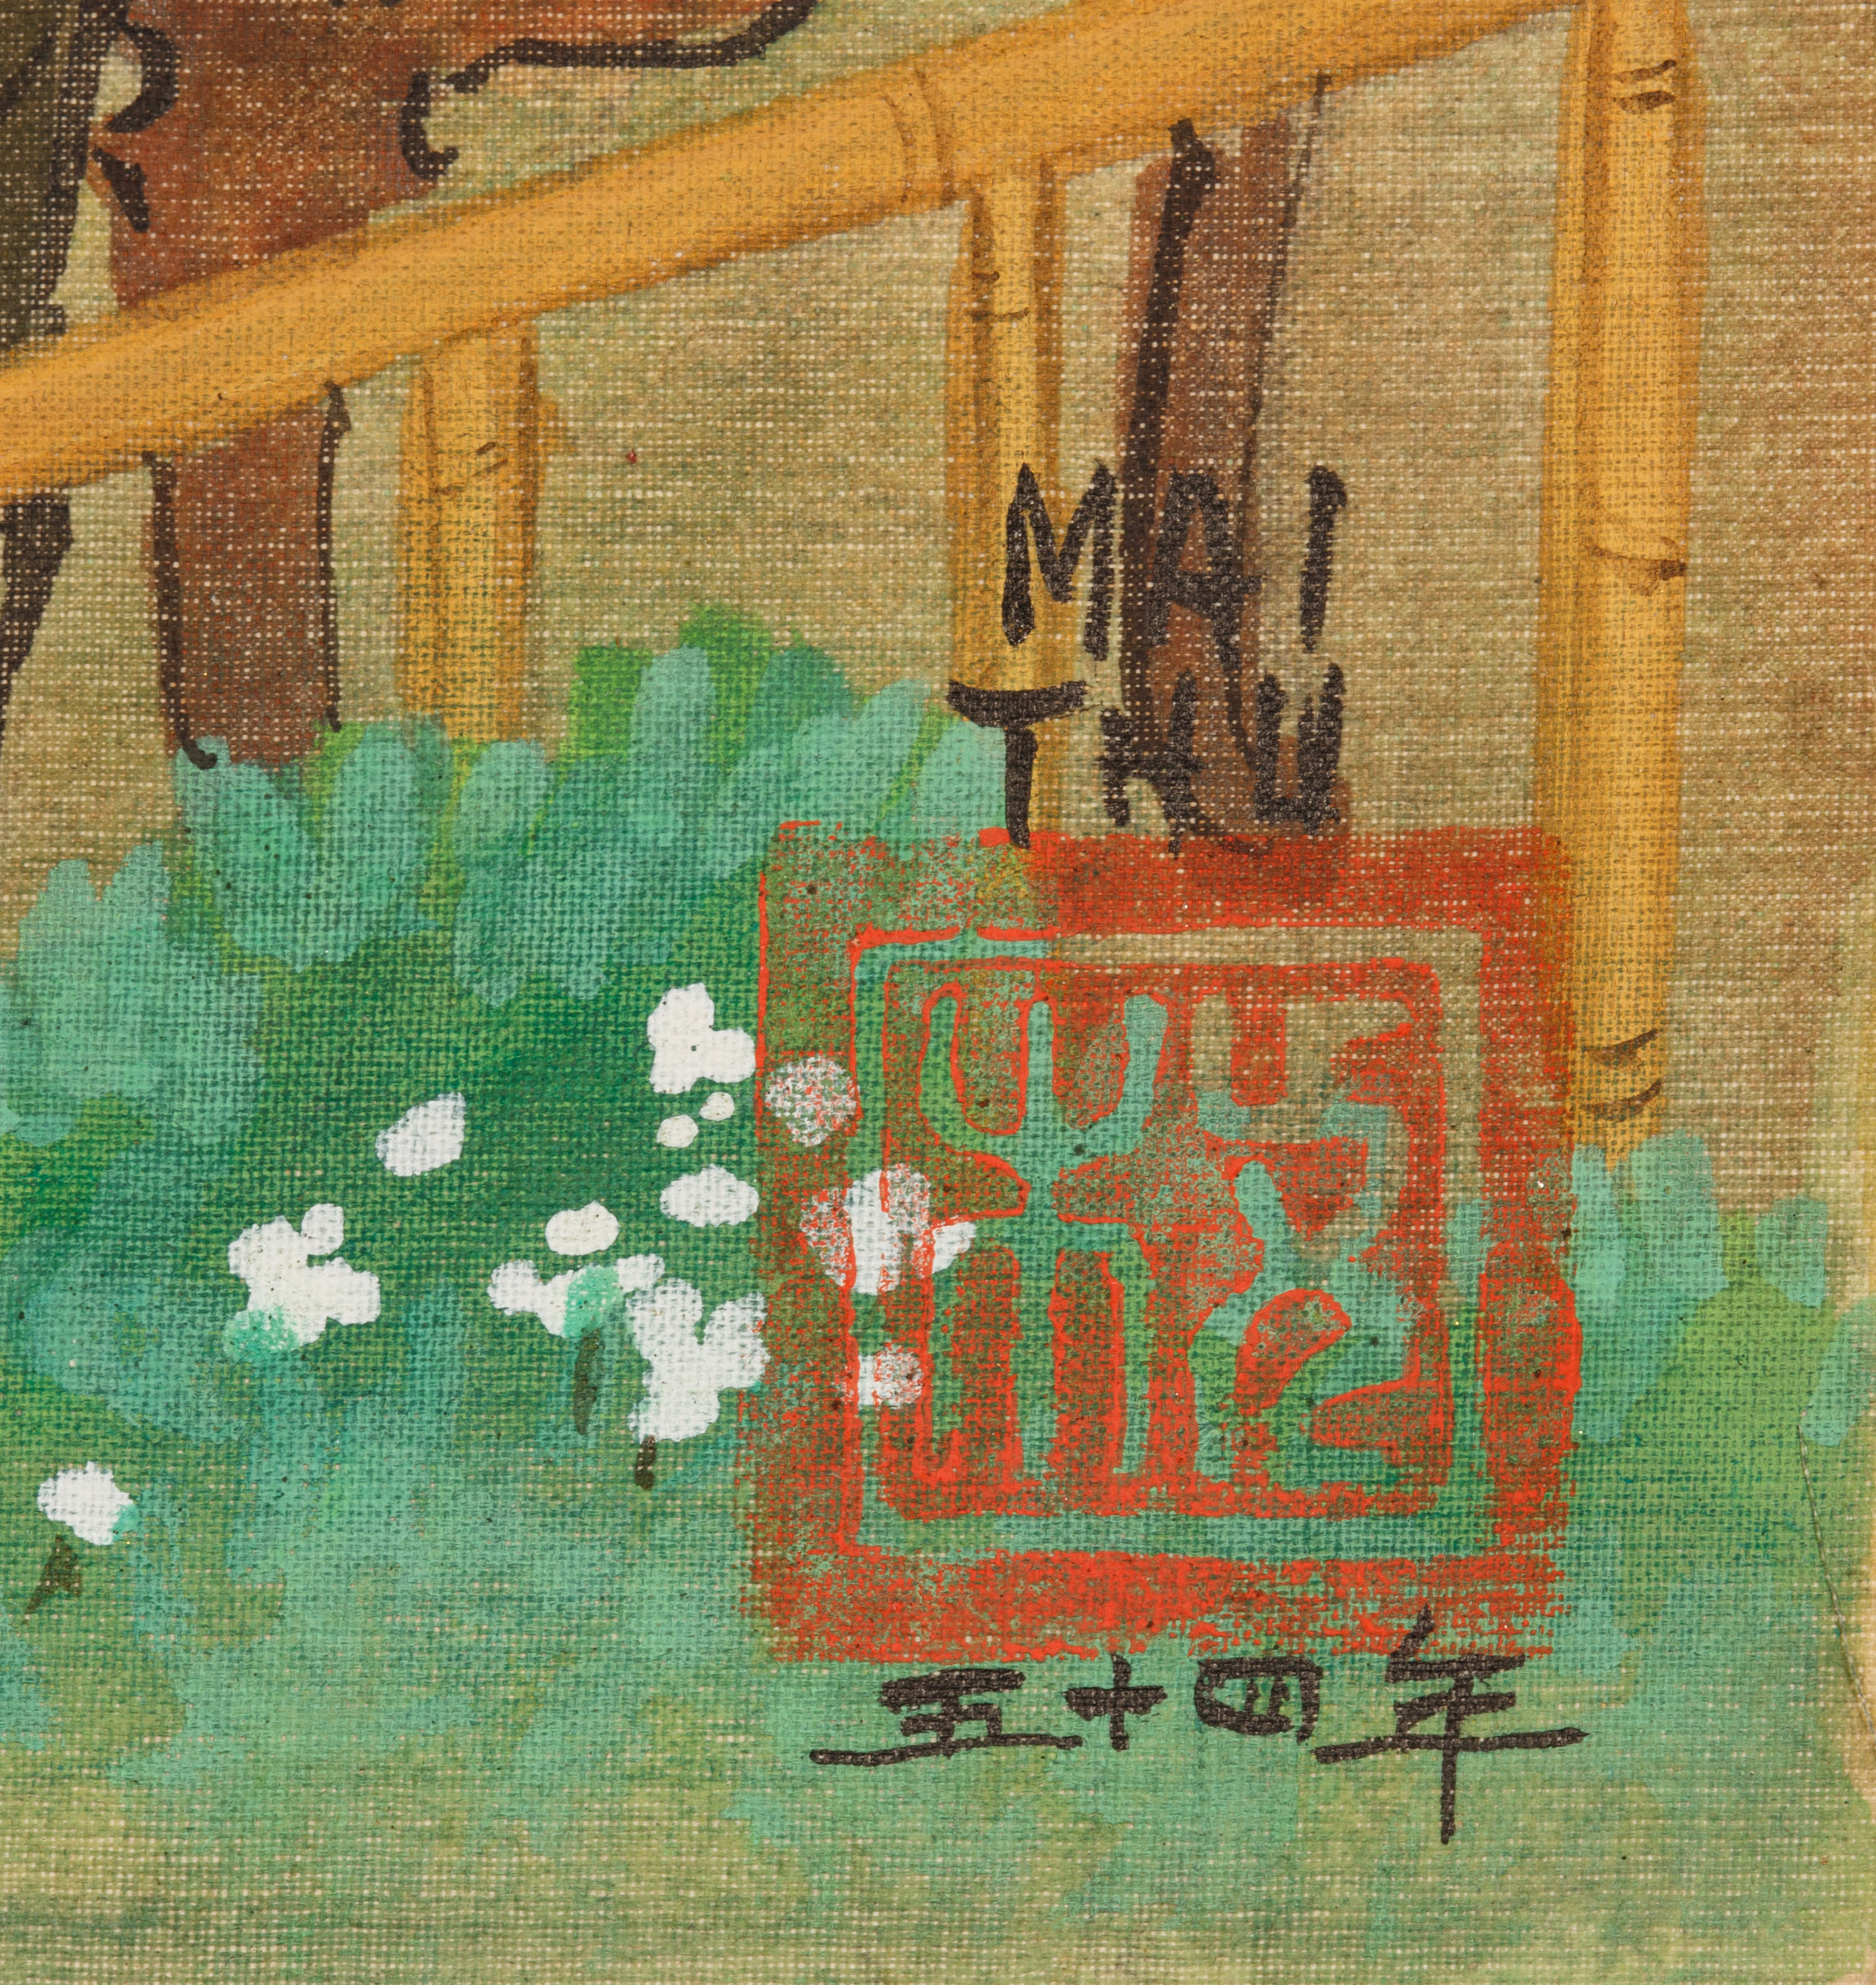 MAI TRUNG THU (VIETNAMESE-FRENCH 1906-1980) - Image 3 of 5